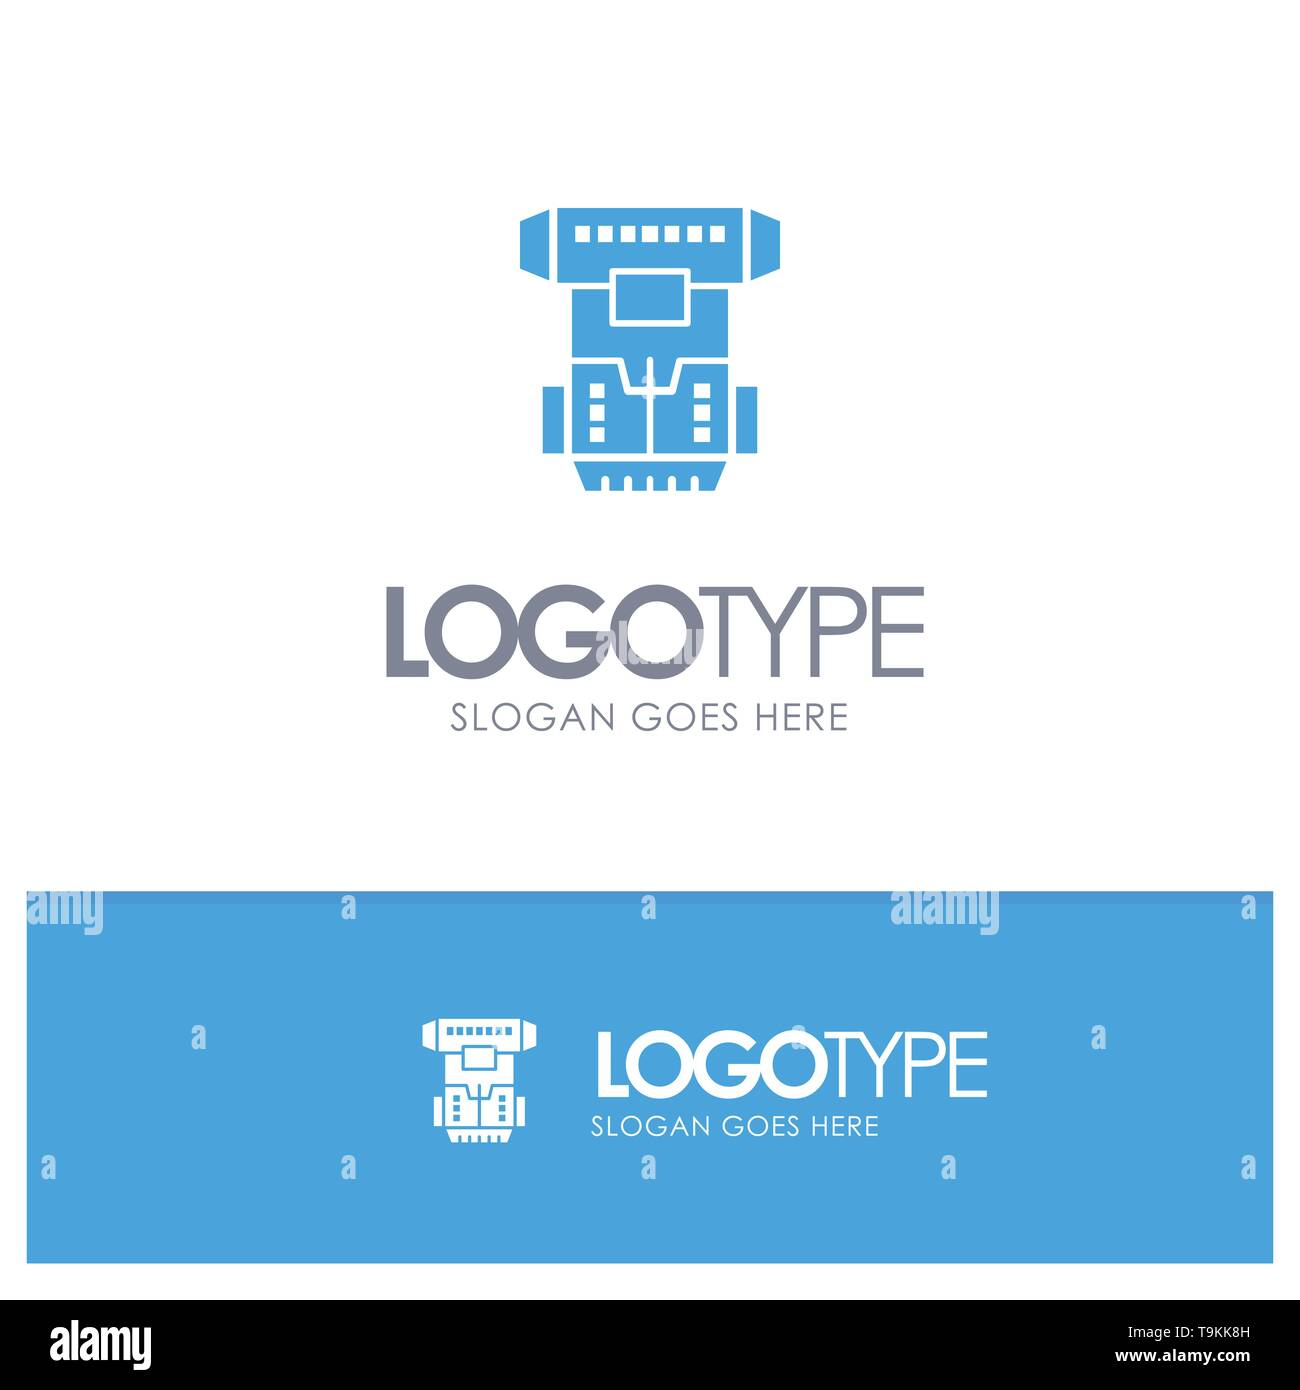 Box, Chamber, Cryogenic, Cryonics, Cryotherapy Blue Solid Logo with place for tagline - Stock Image